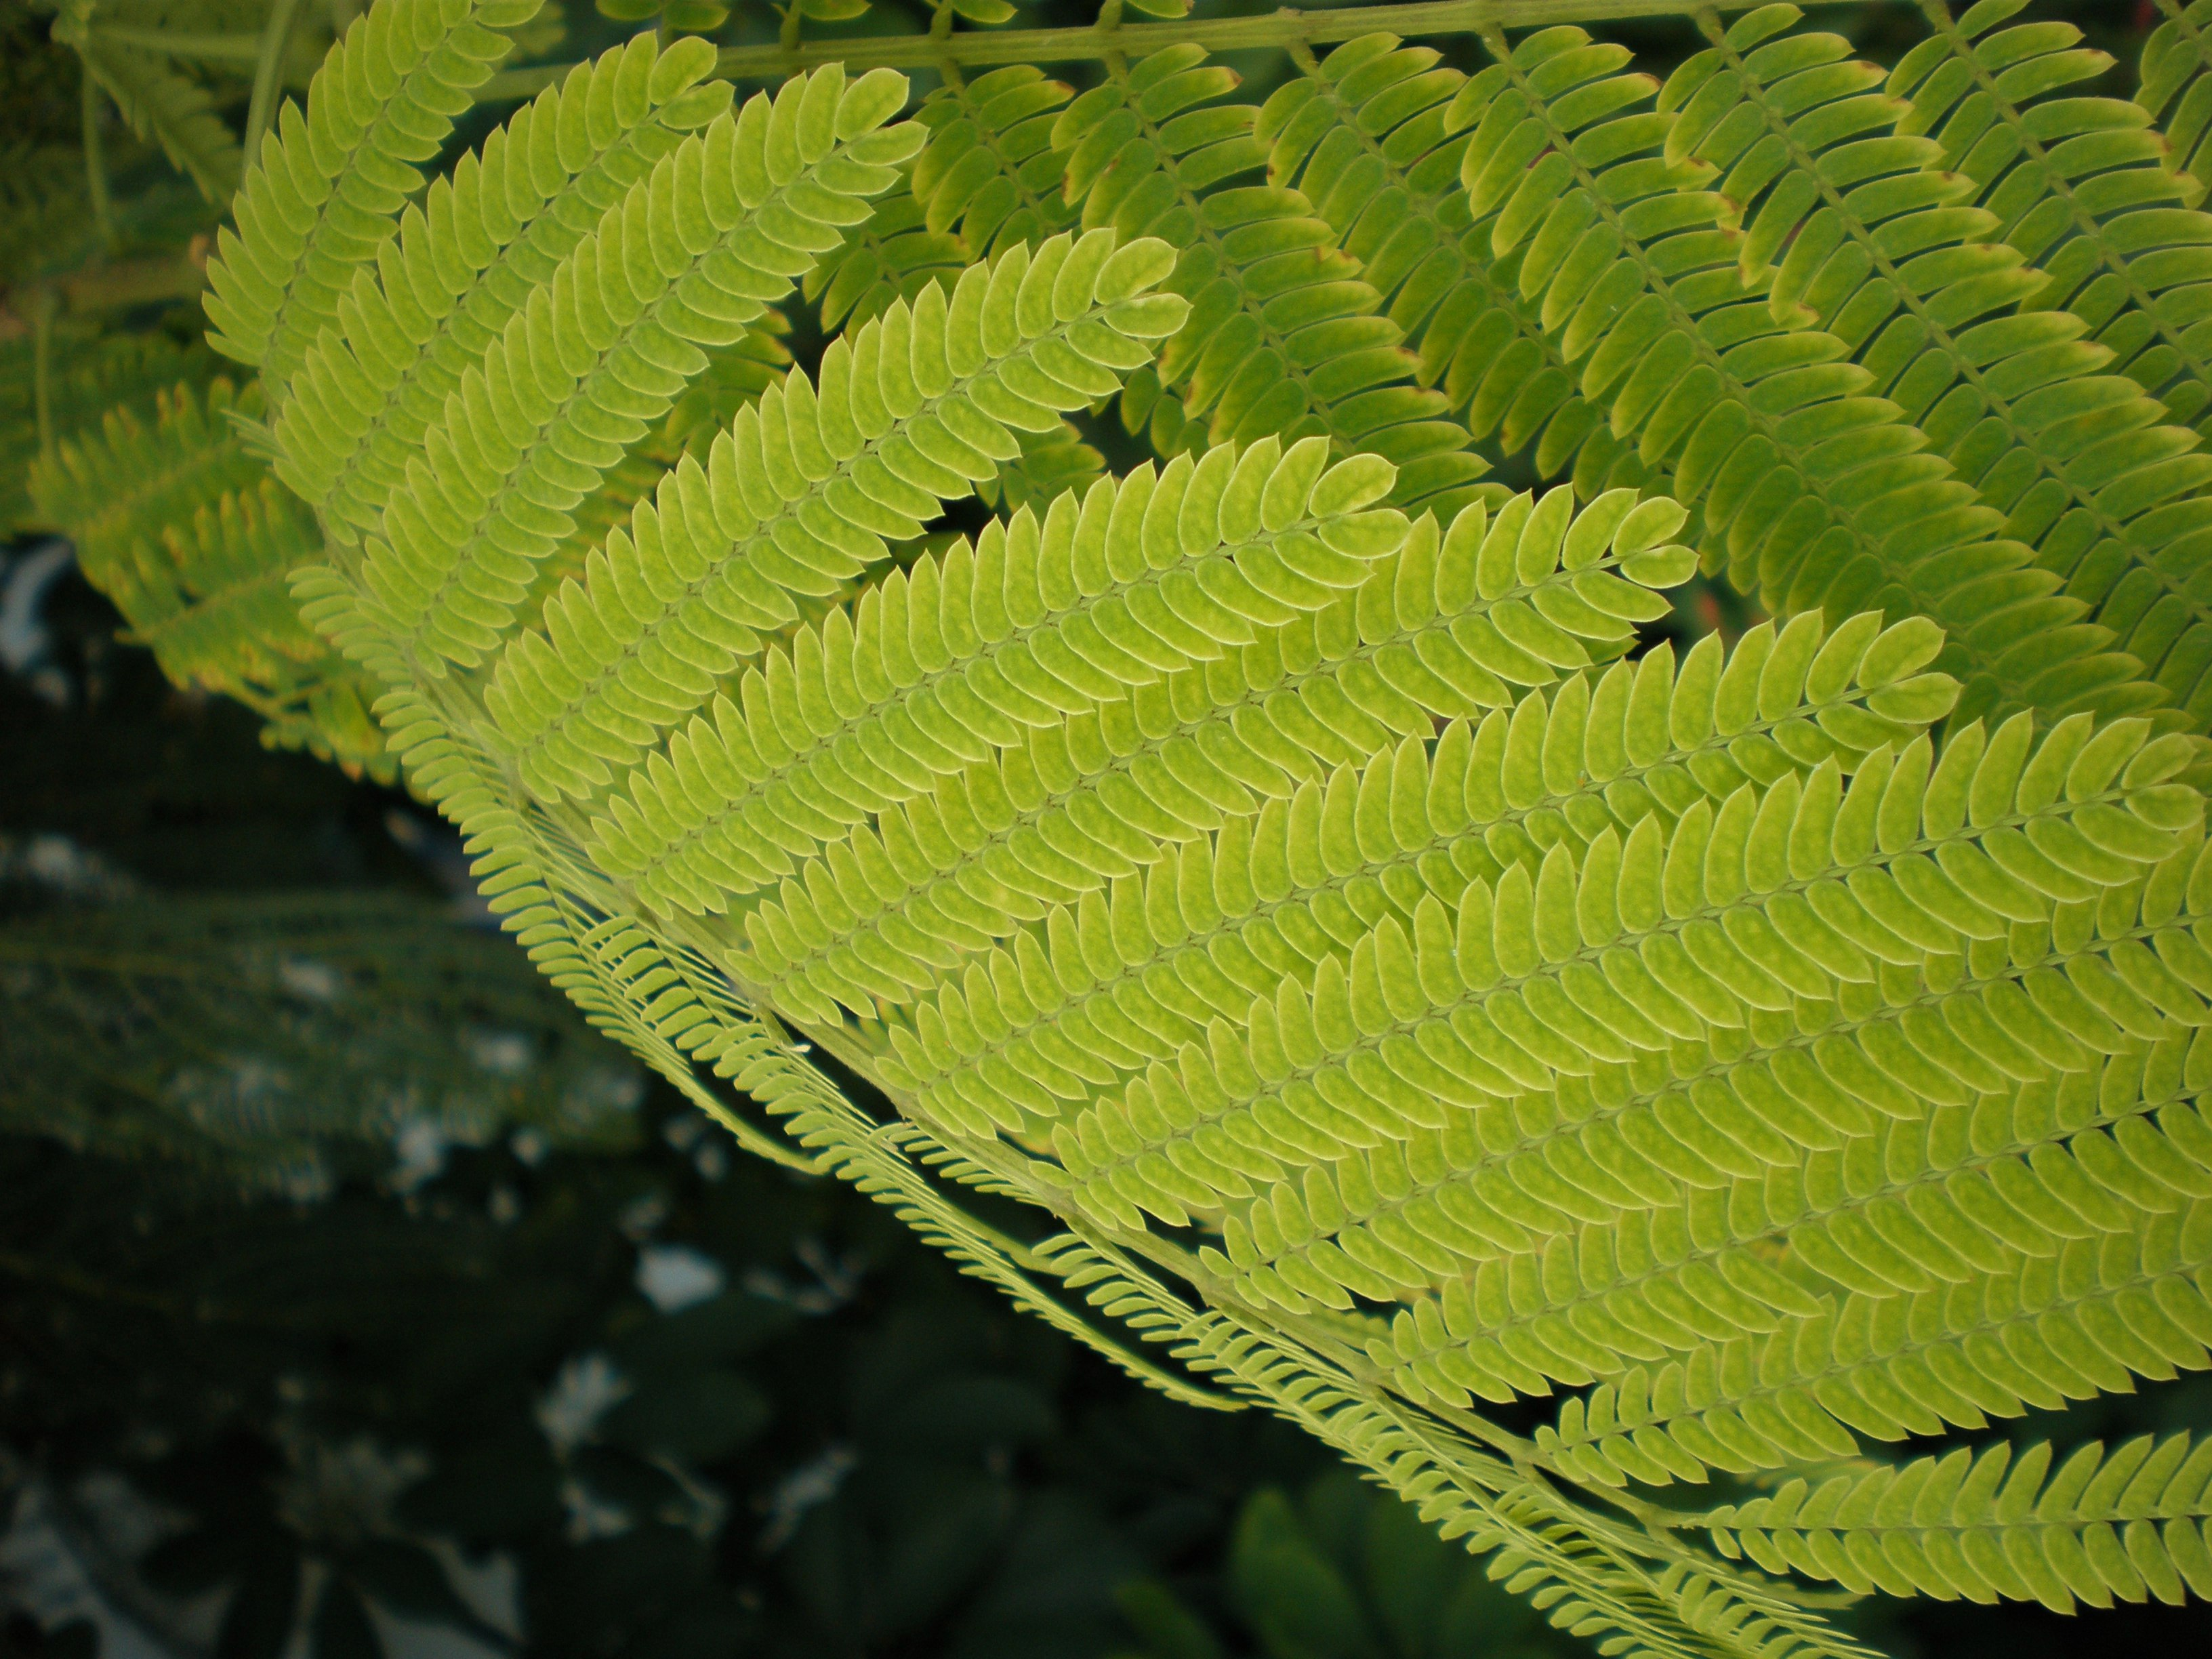 Fileacacia Leavesjpg Wikimedia Commons